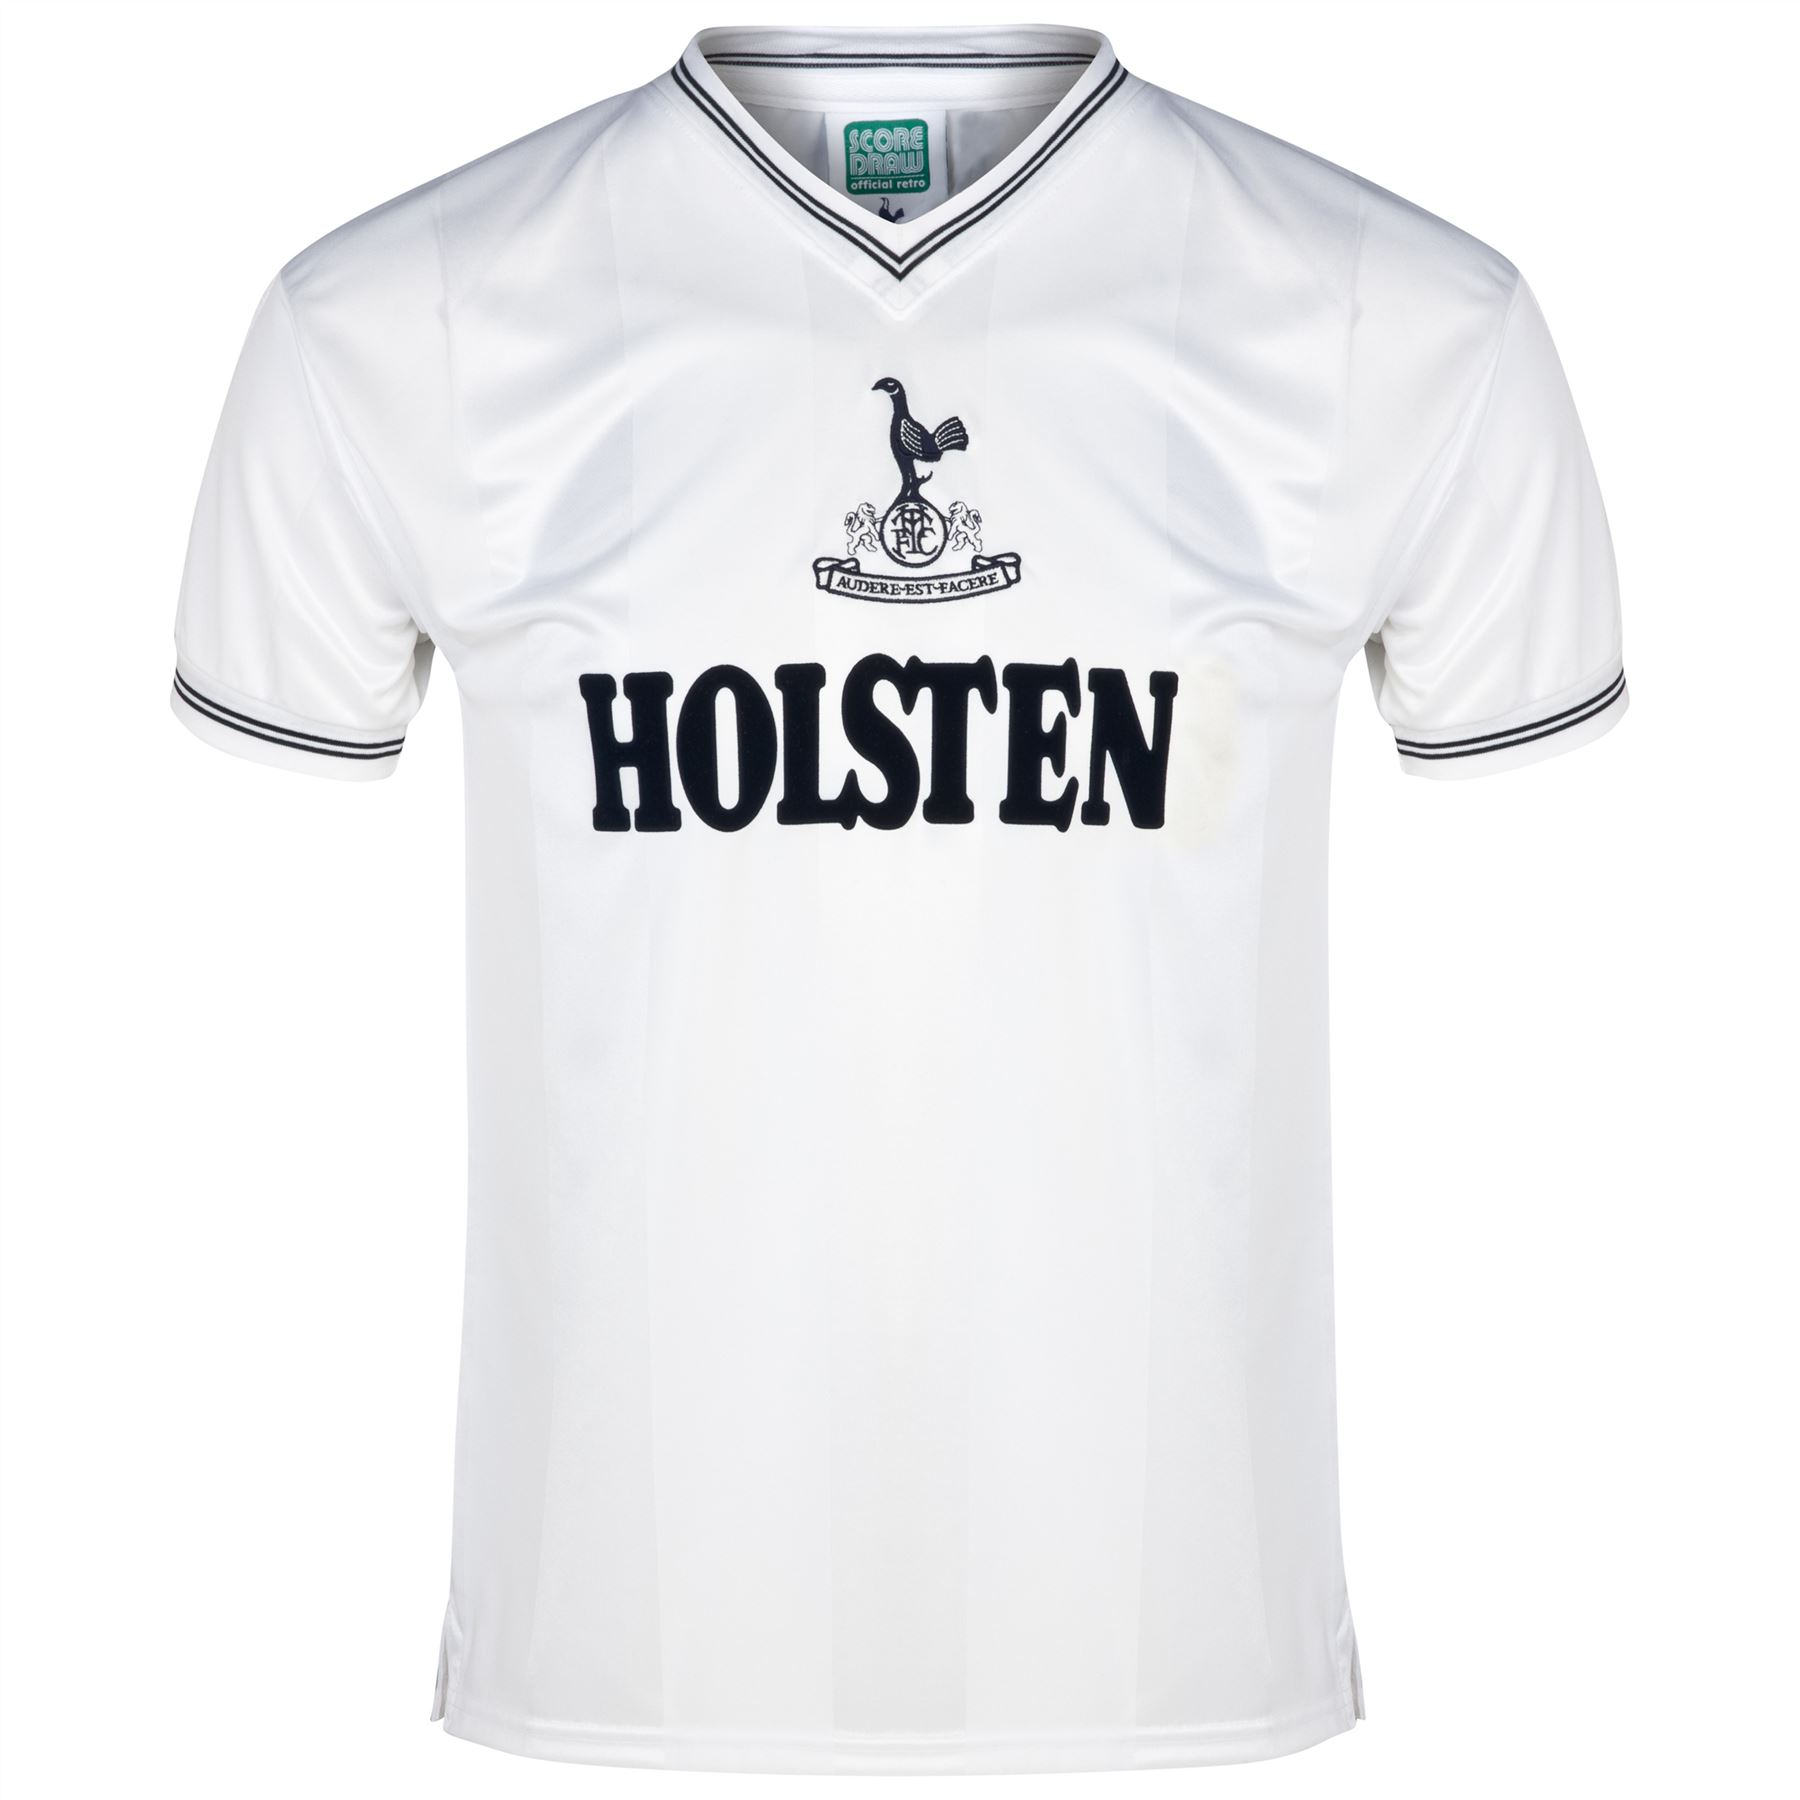 Tottenham: Score Draw Retro Football Tottenham Hotspur 1983 Short